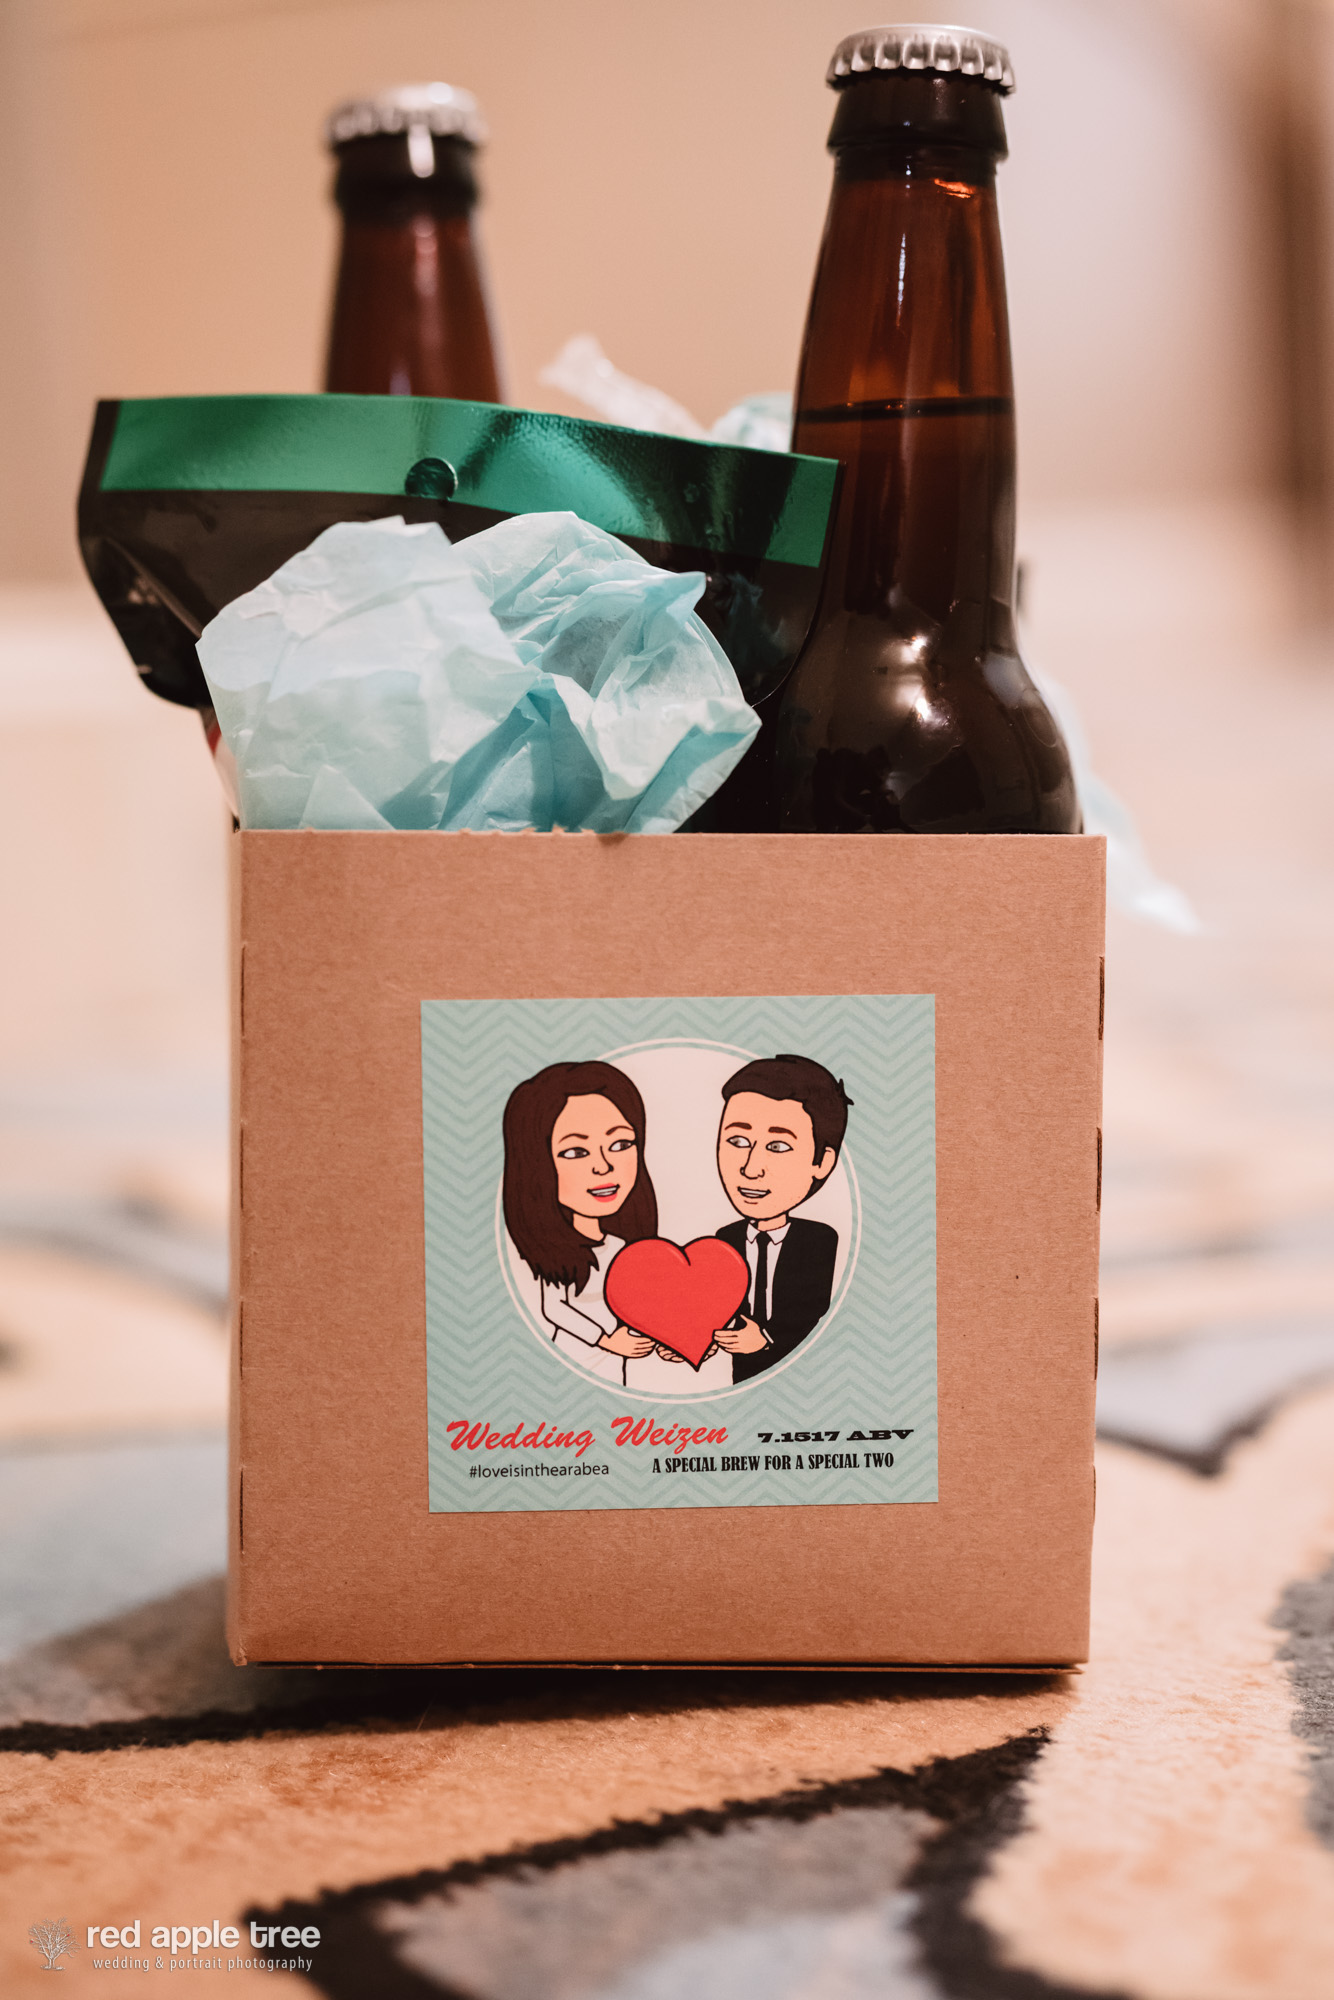 How cool is this wedding favor?!?